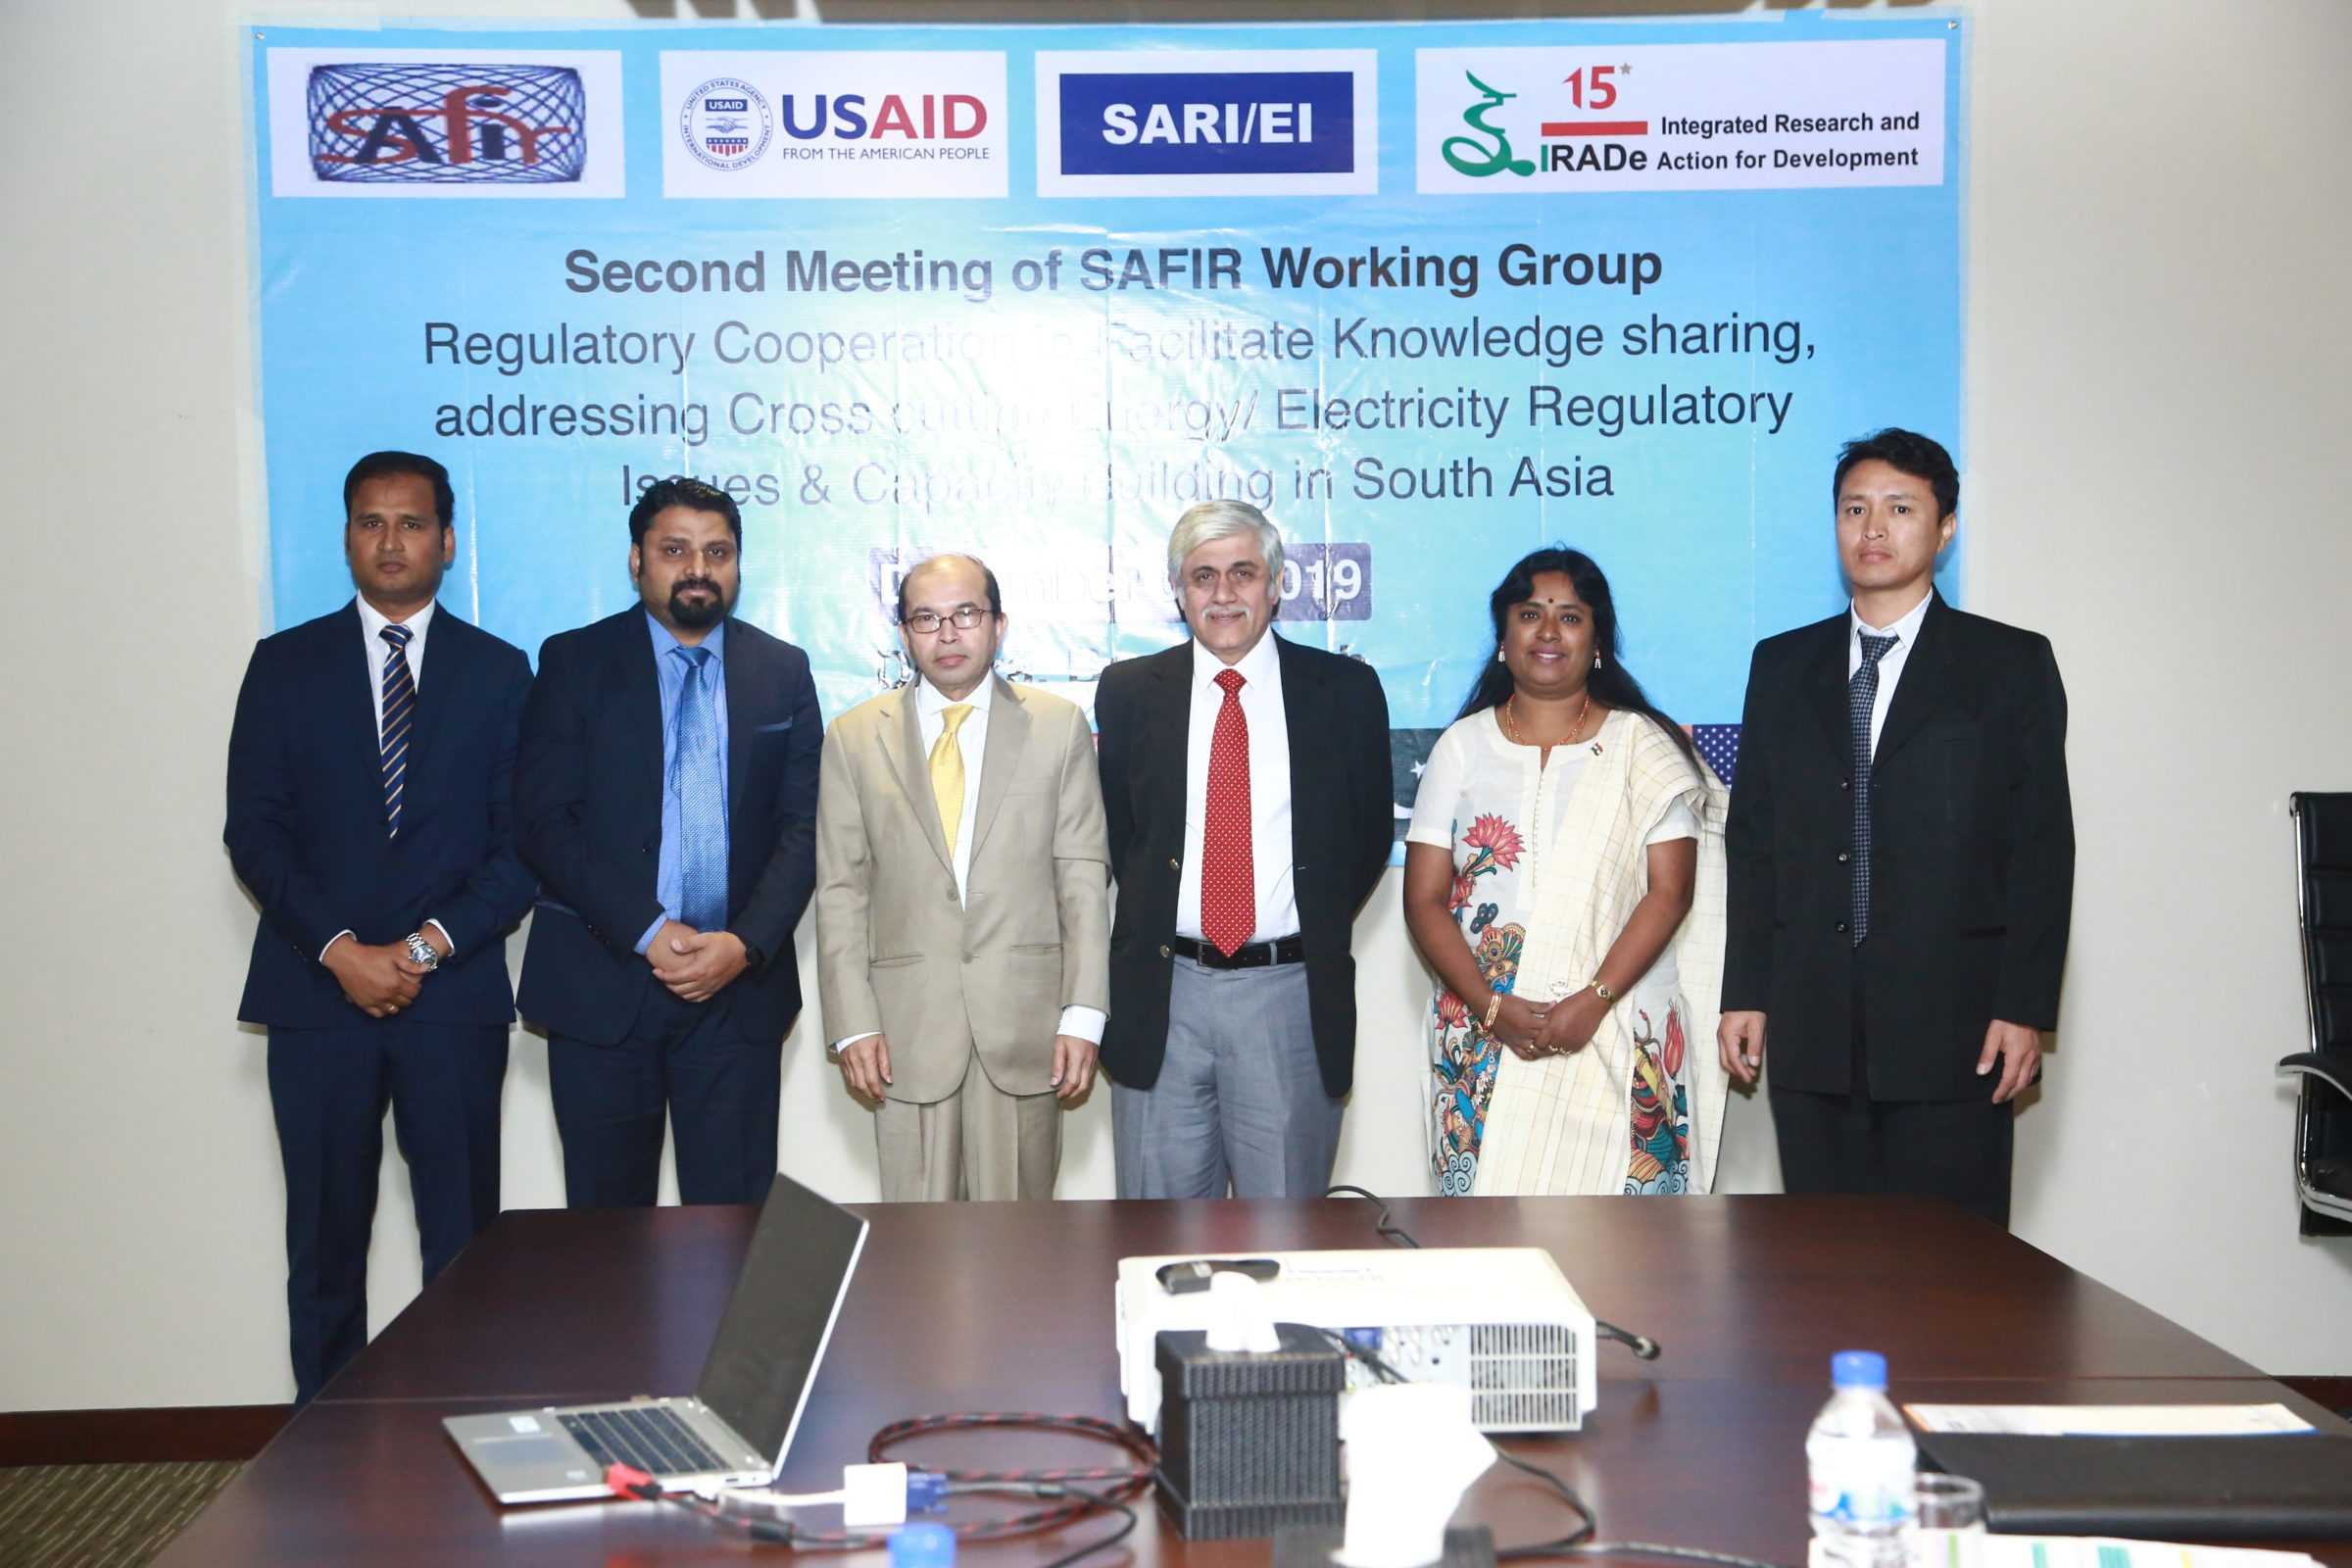 """The Second SAFIR Working Group meeting on """"Regulatory Cooperation to Facilitate Knowledge sharing, addressing Cross cutting Energy/ Electricity Regulatory Issues and Capacity Building in South Asia"""", 4th December 2019"""